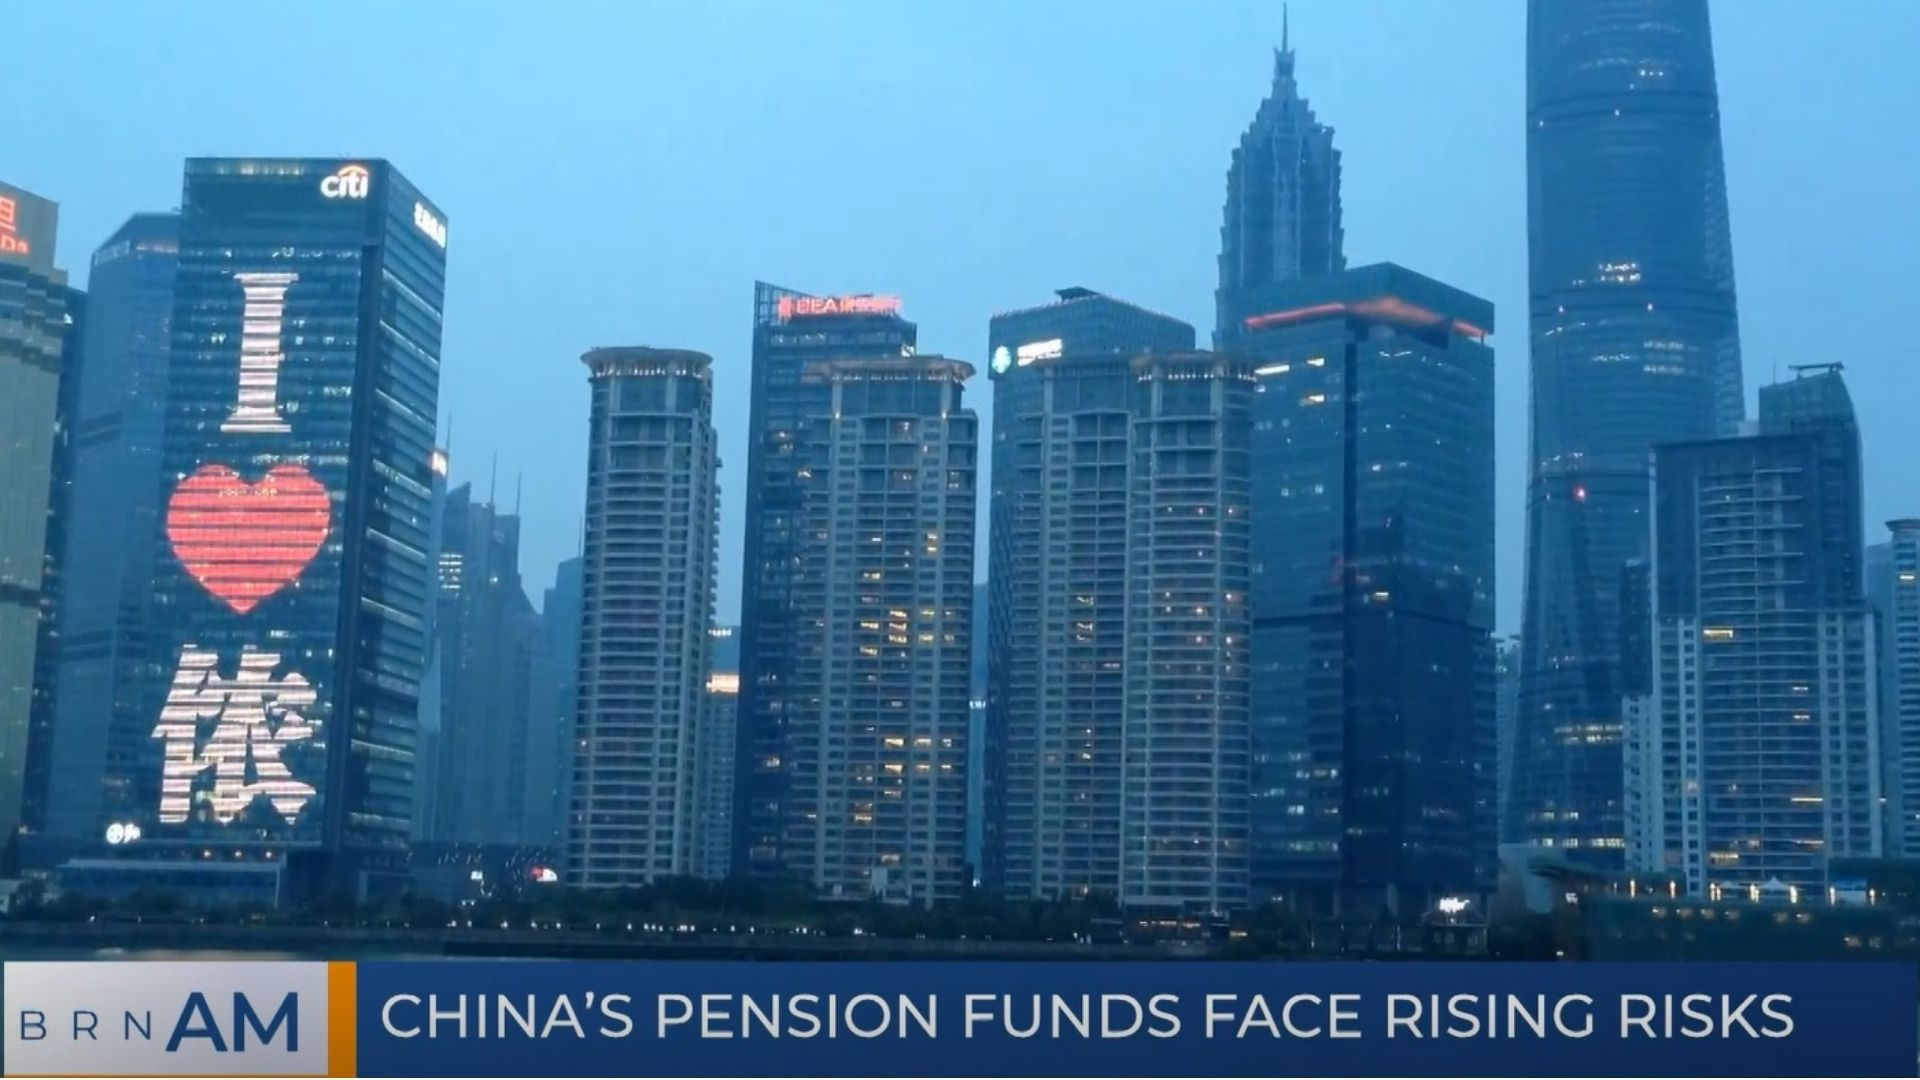 BRN AM   China's pension funds face rising risks